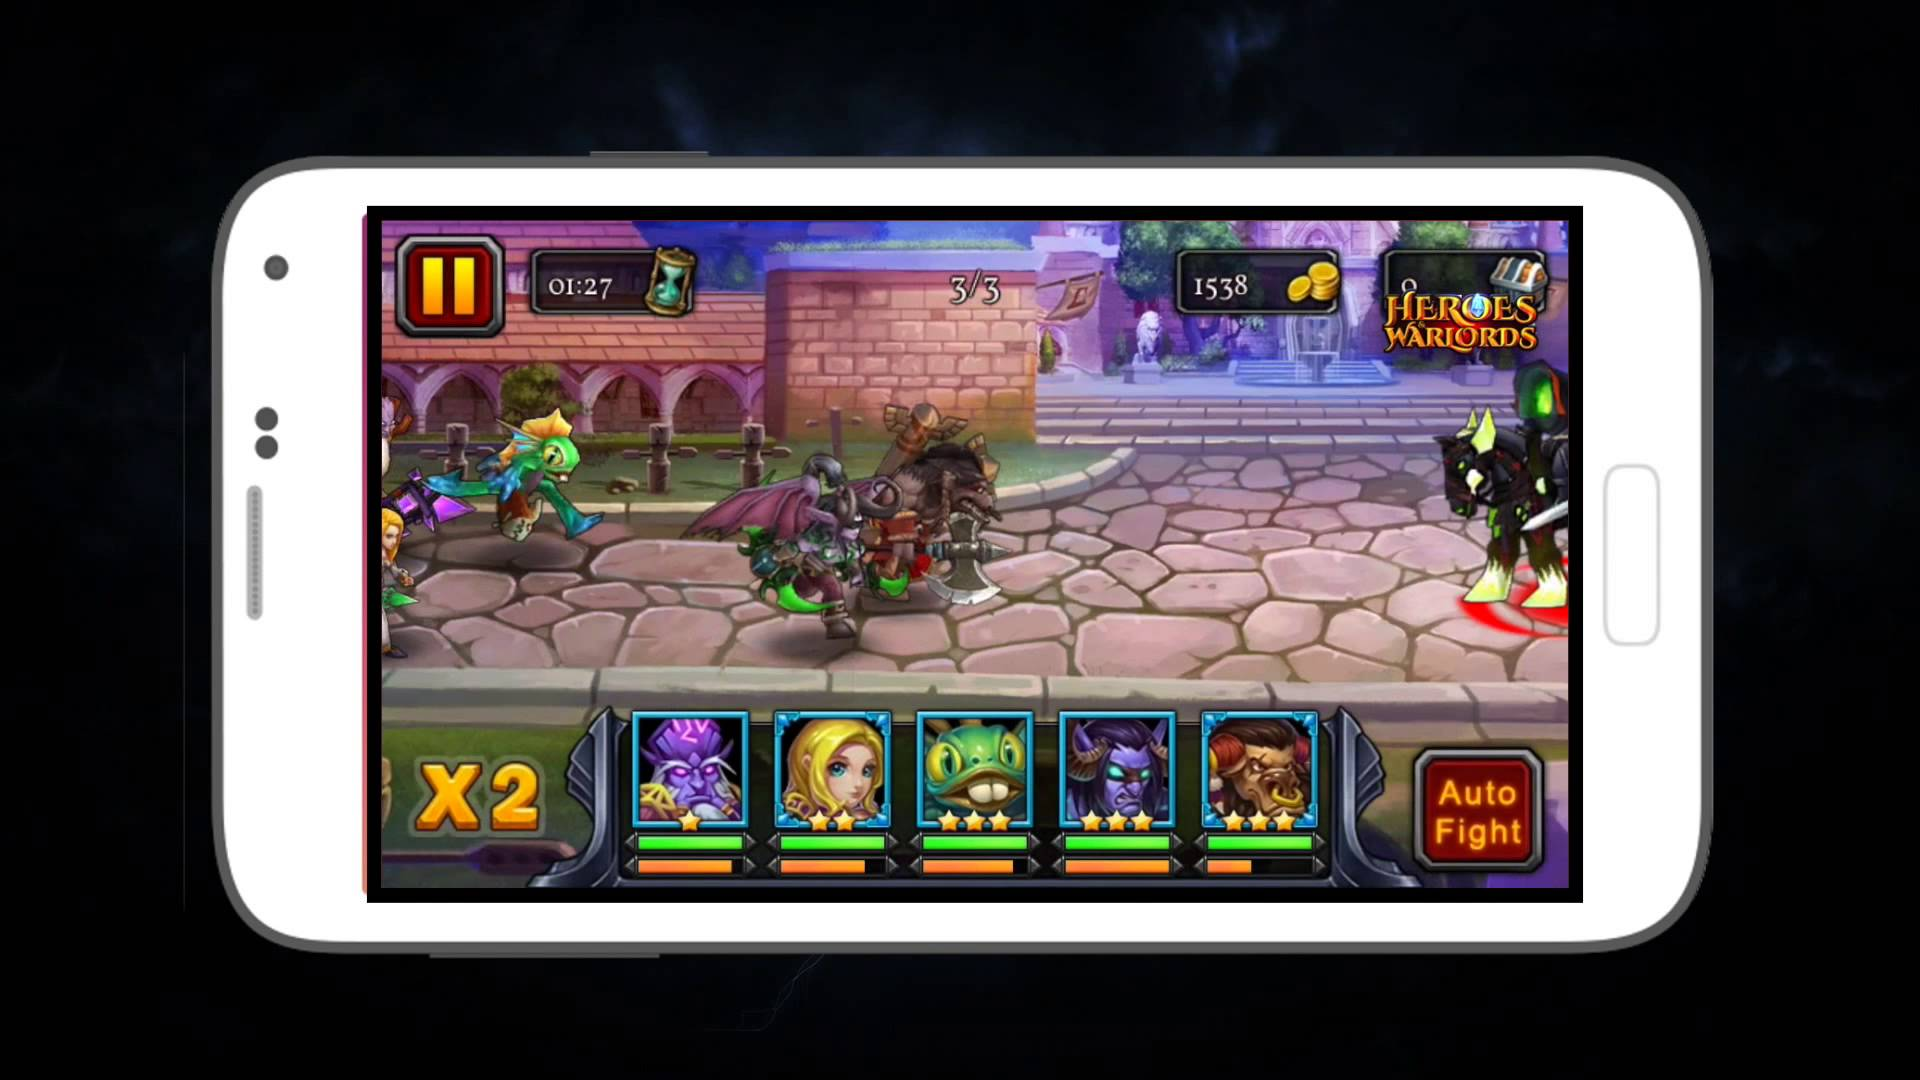 Heroes and Warlords cheats – so bekommt ihr Gems